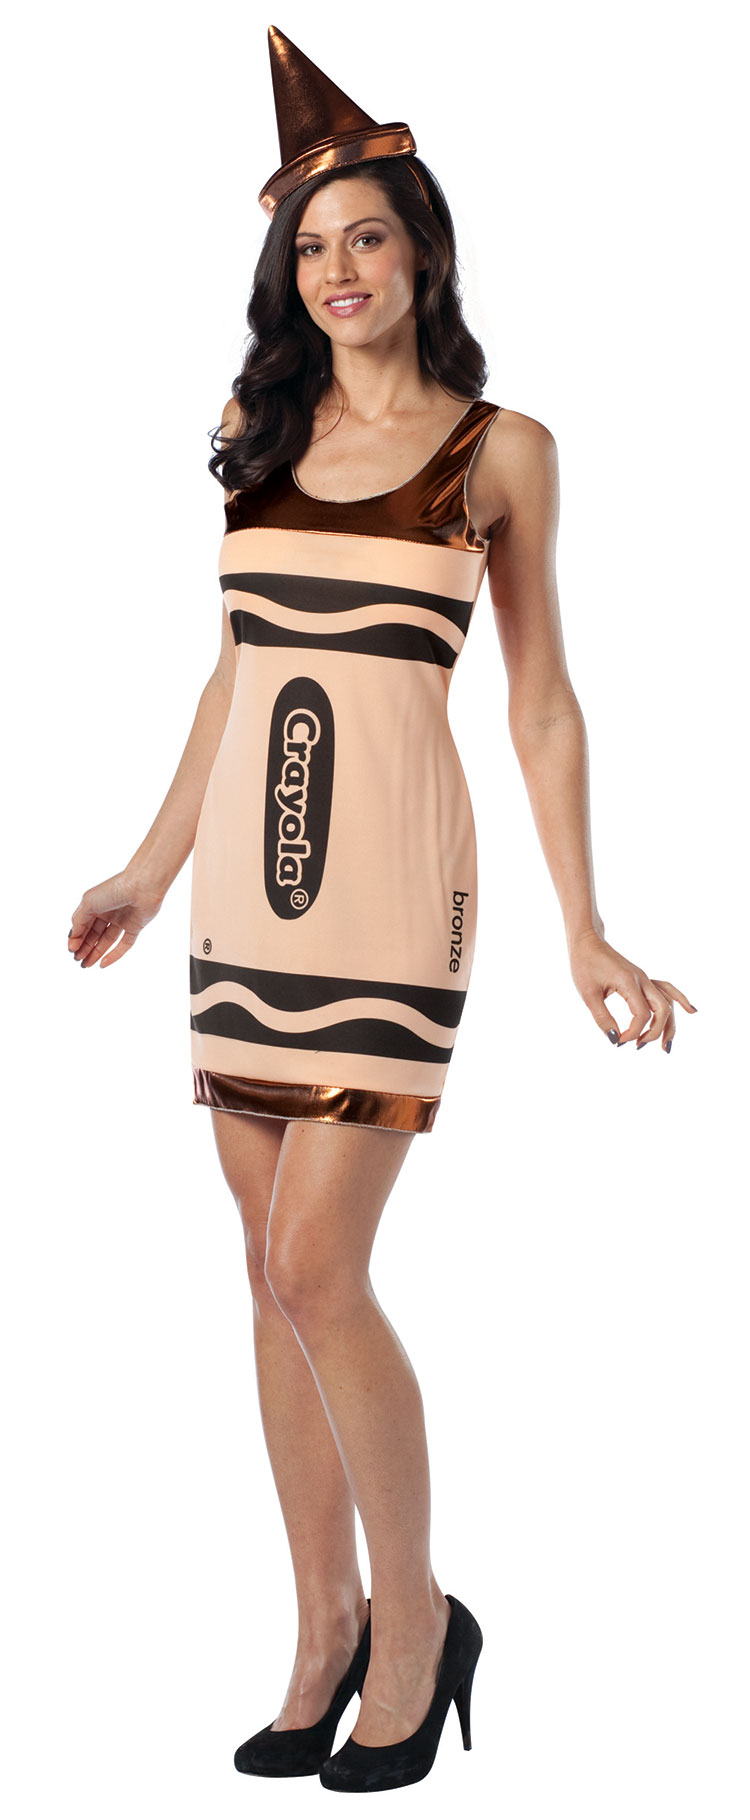 Teen Bronze Crayola Costume Dress